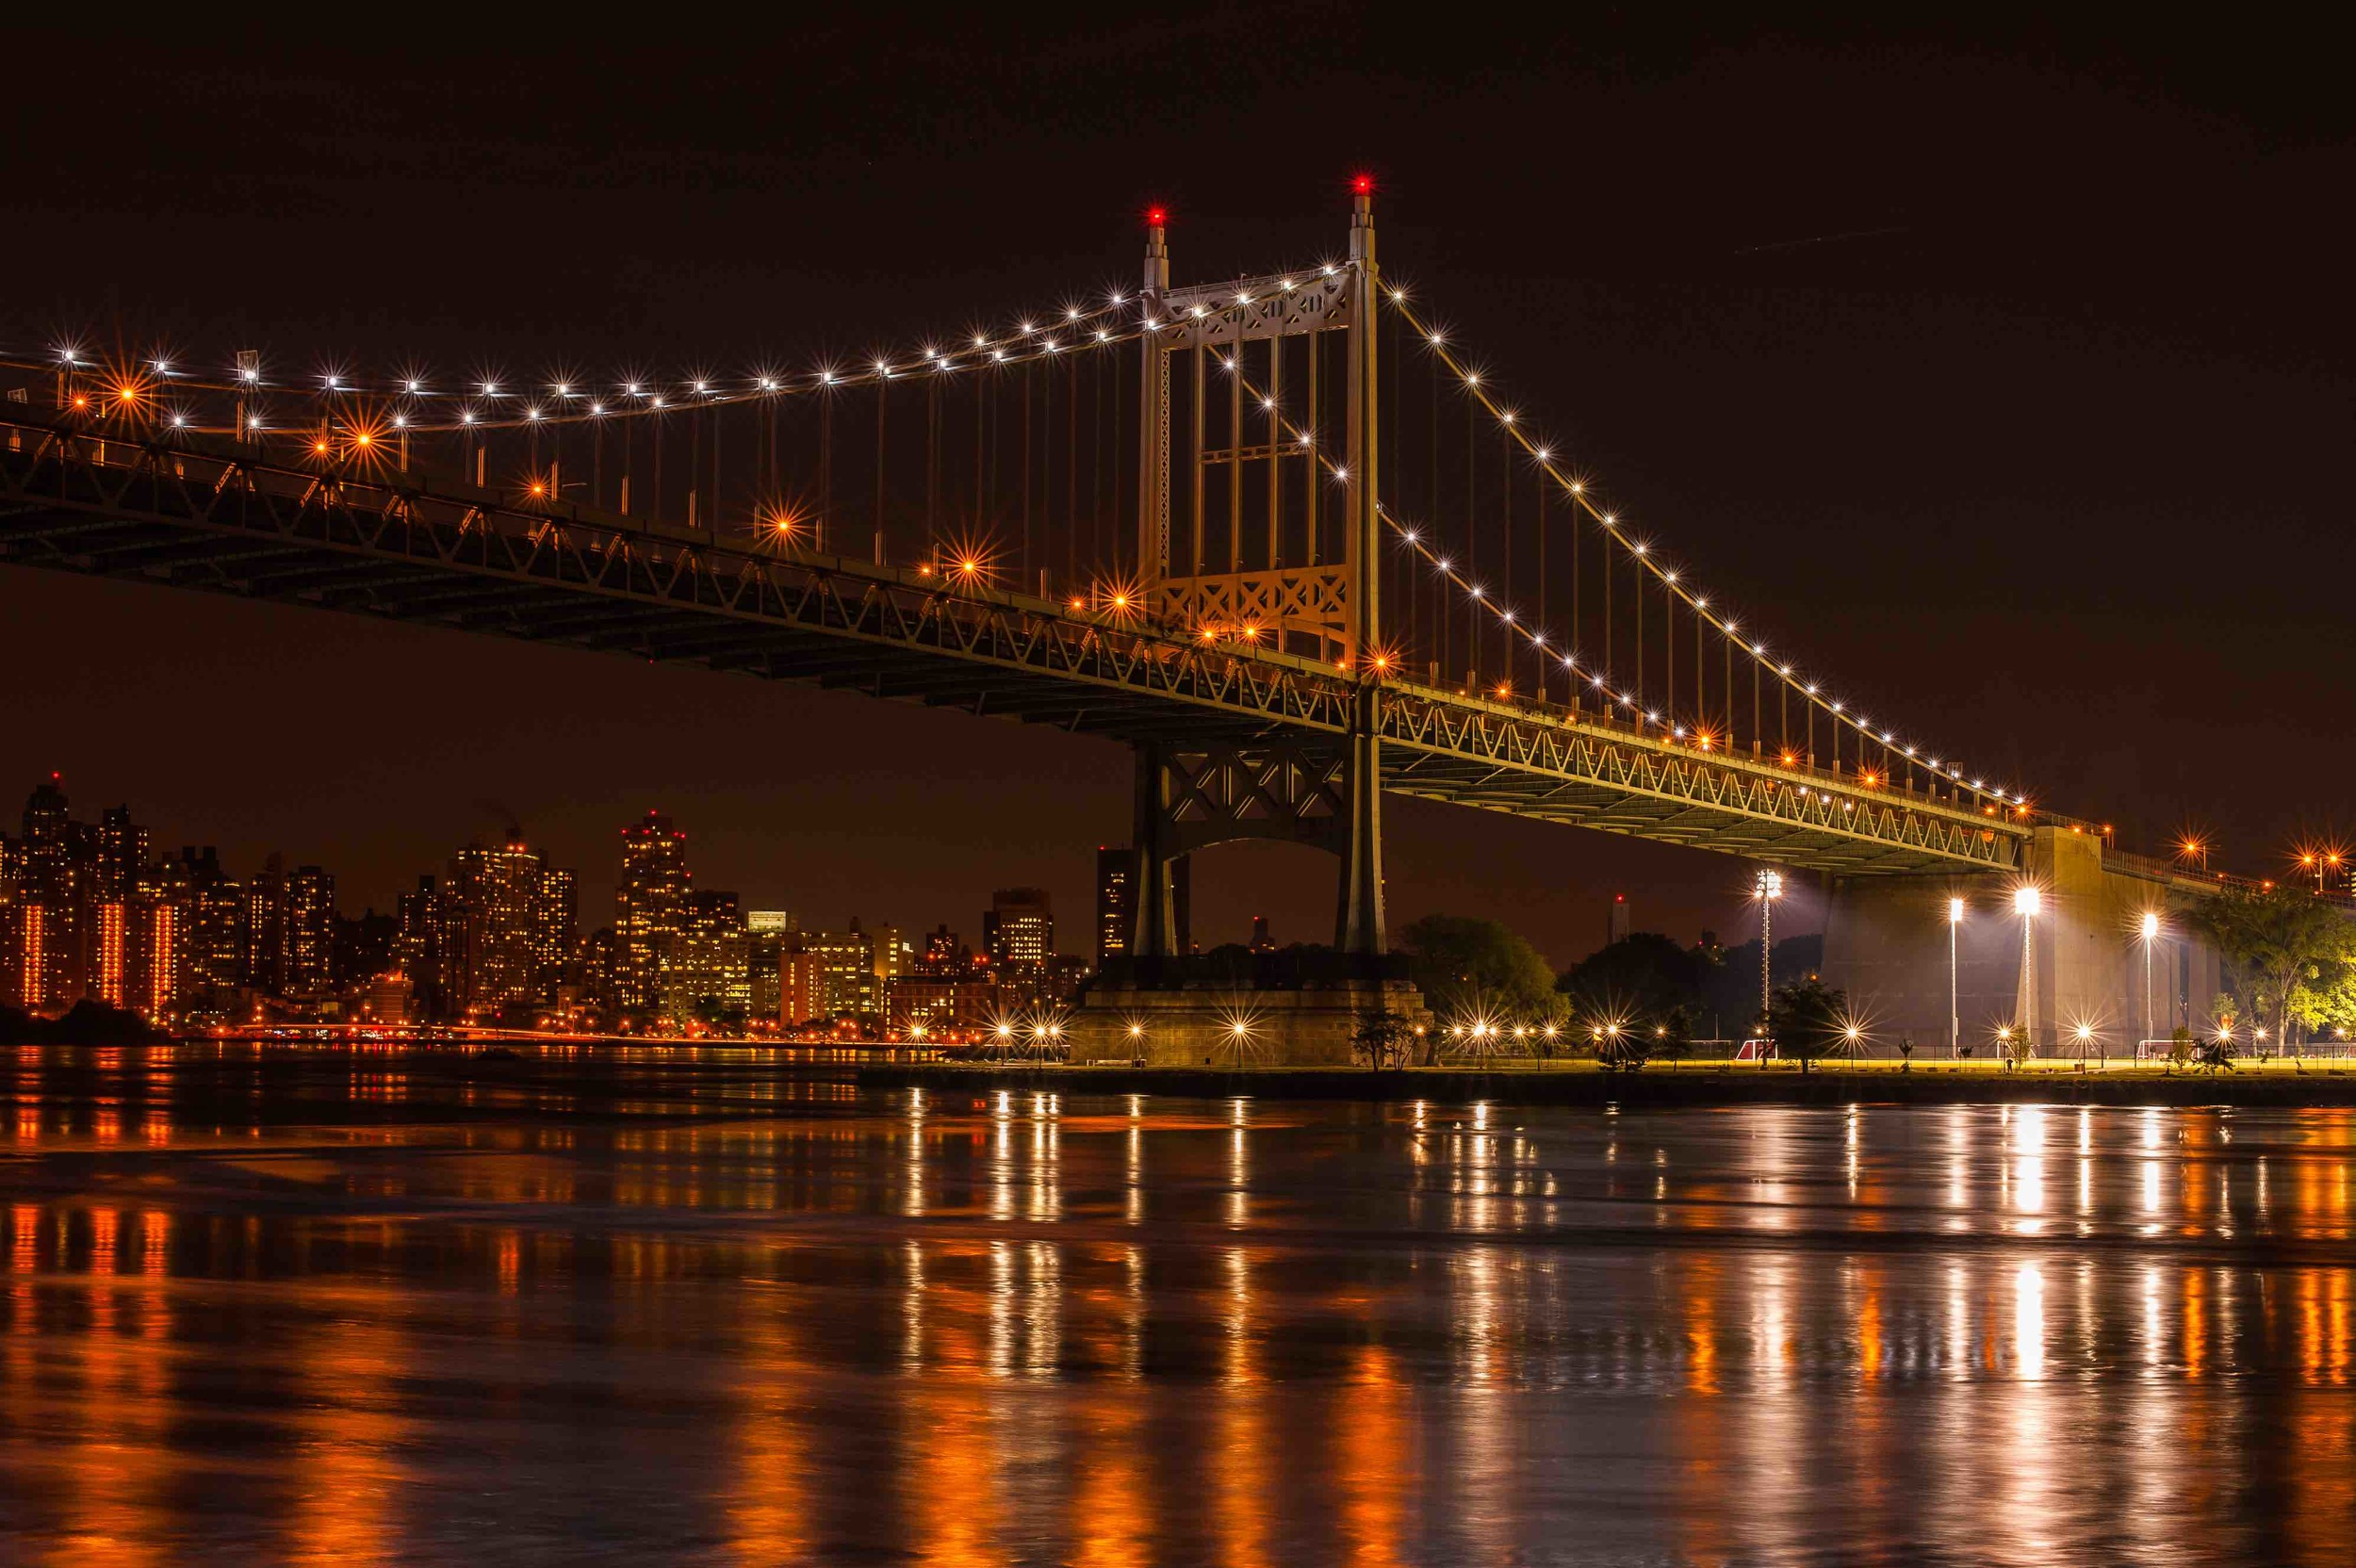 Astoria Park, Triborough Bridge, and Manhattan skyline reflecting on the East River waters